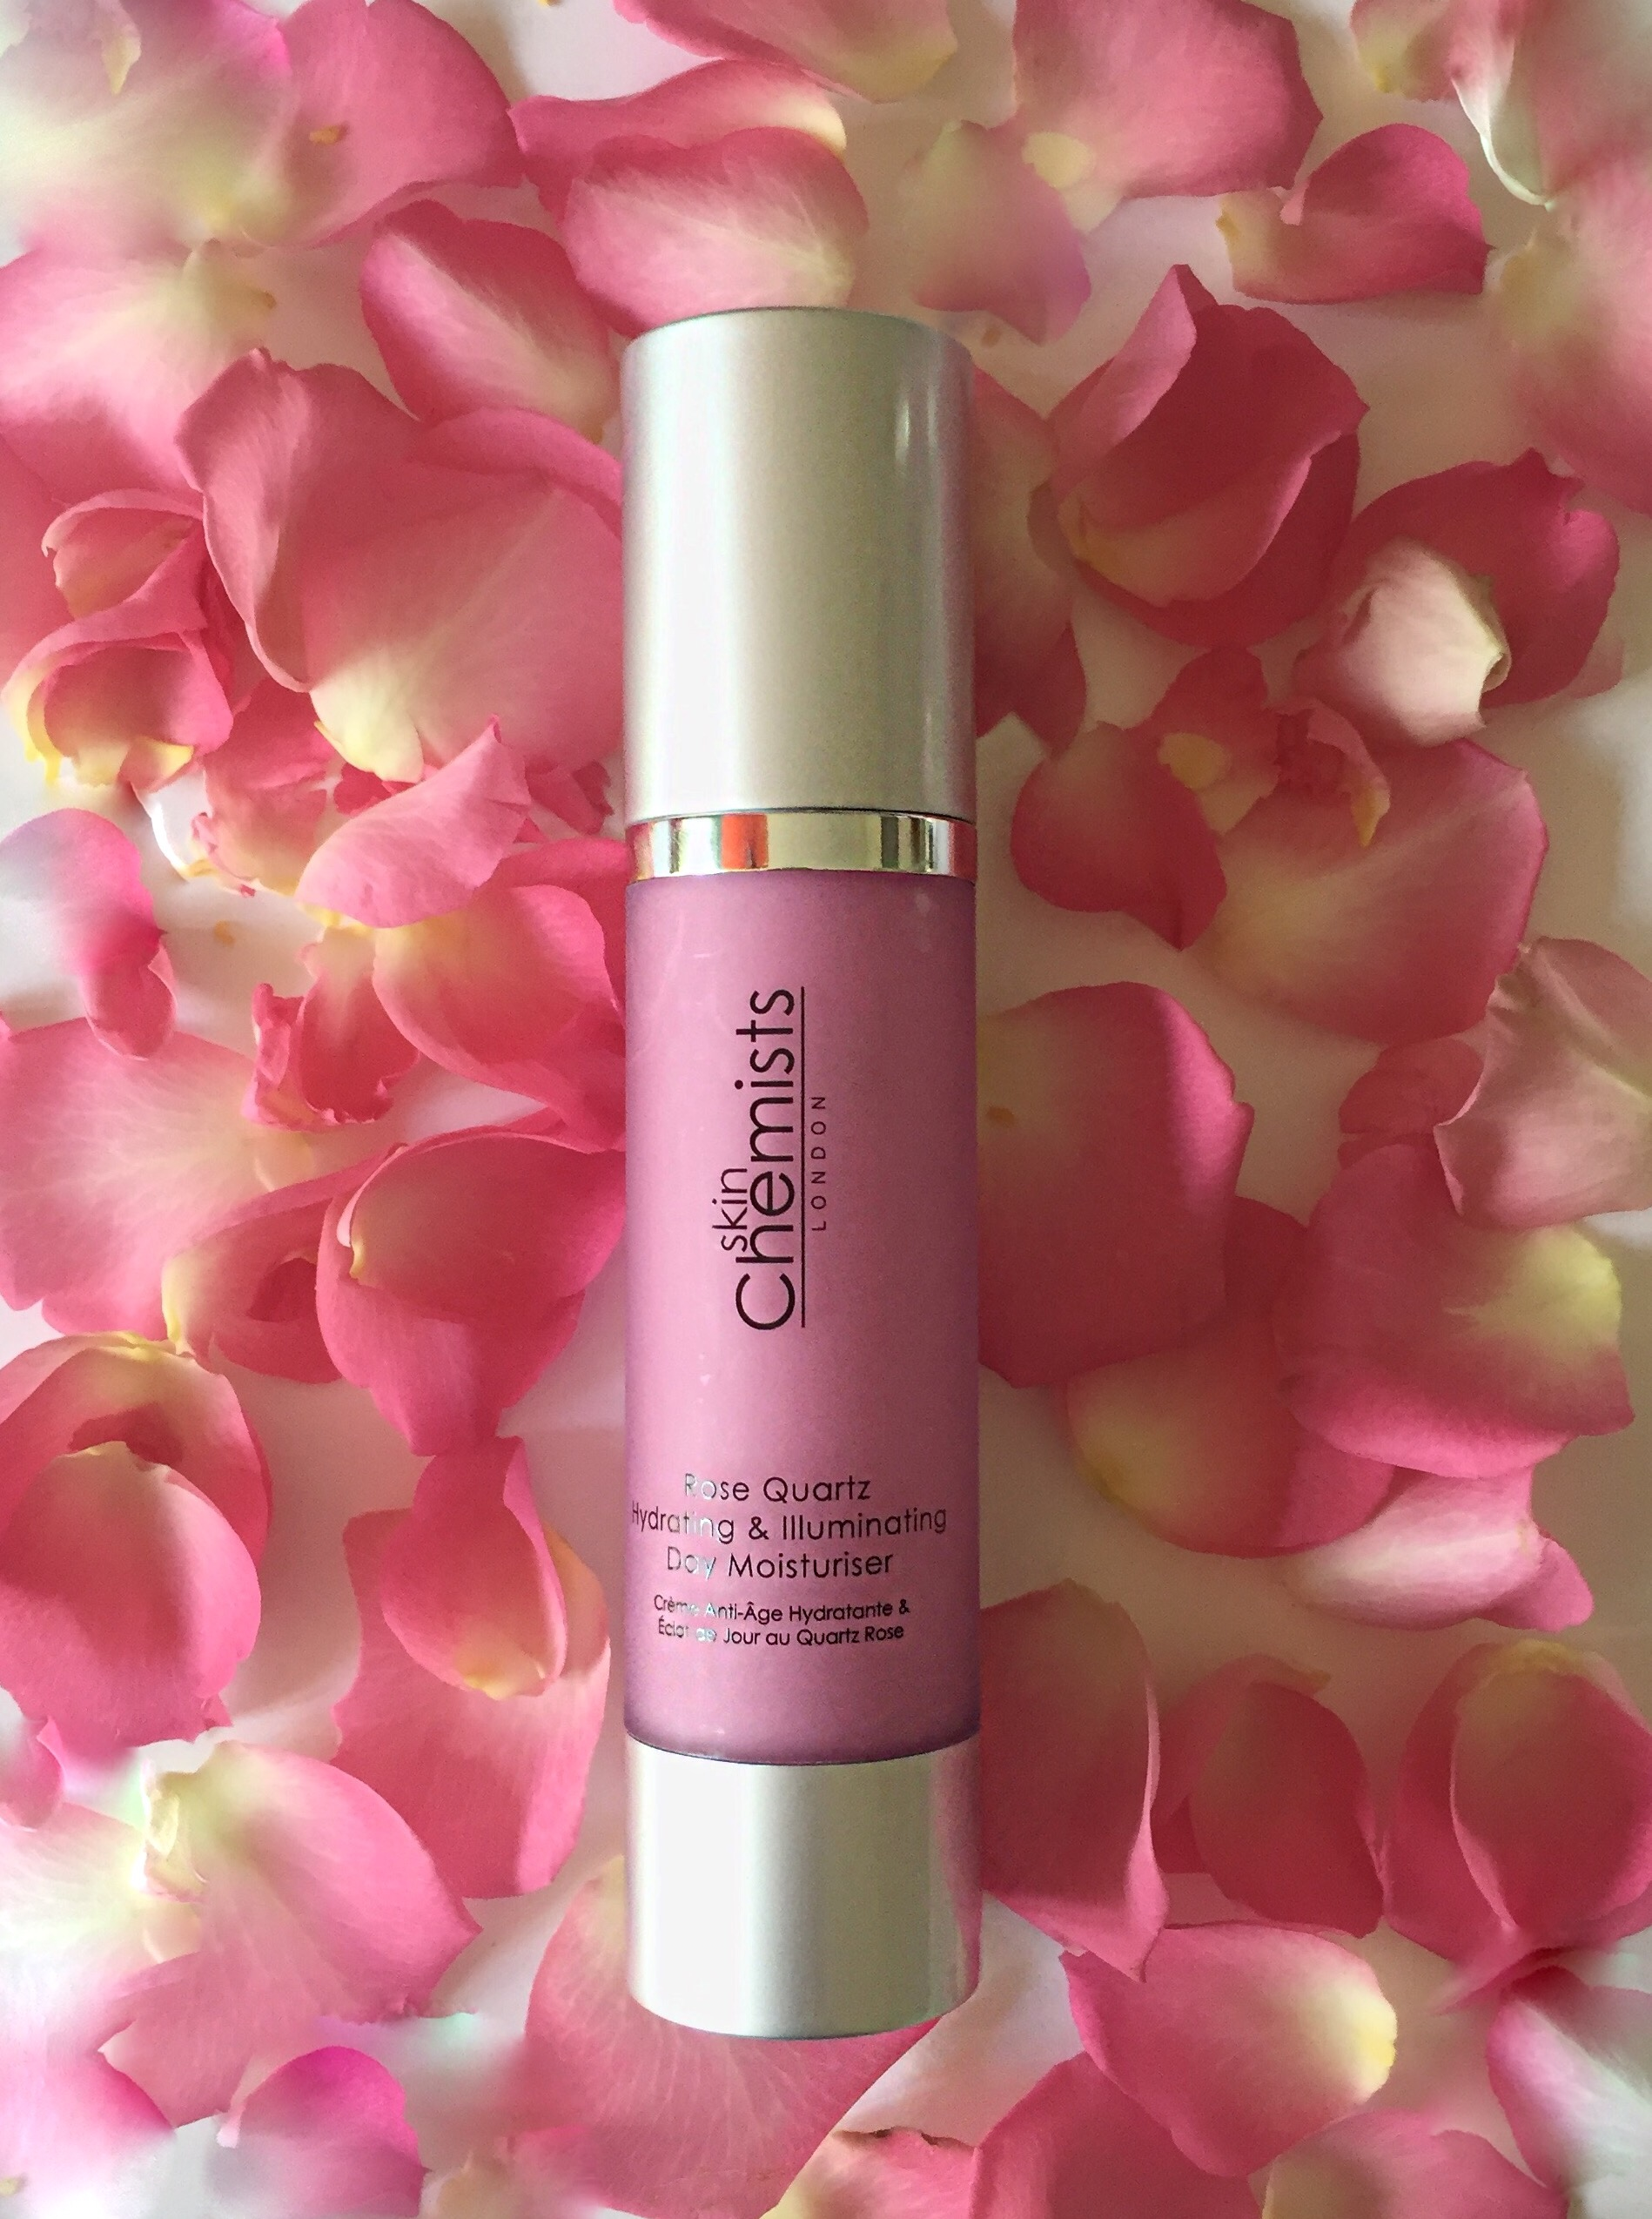 Skin Chemists Rose Quartz Hydrating & Illuminating Day Moisturiser via beauty blog Always a Blue Sky Girl blogger blueskygirlie